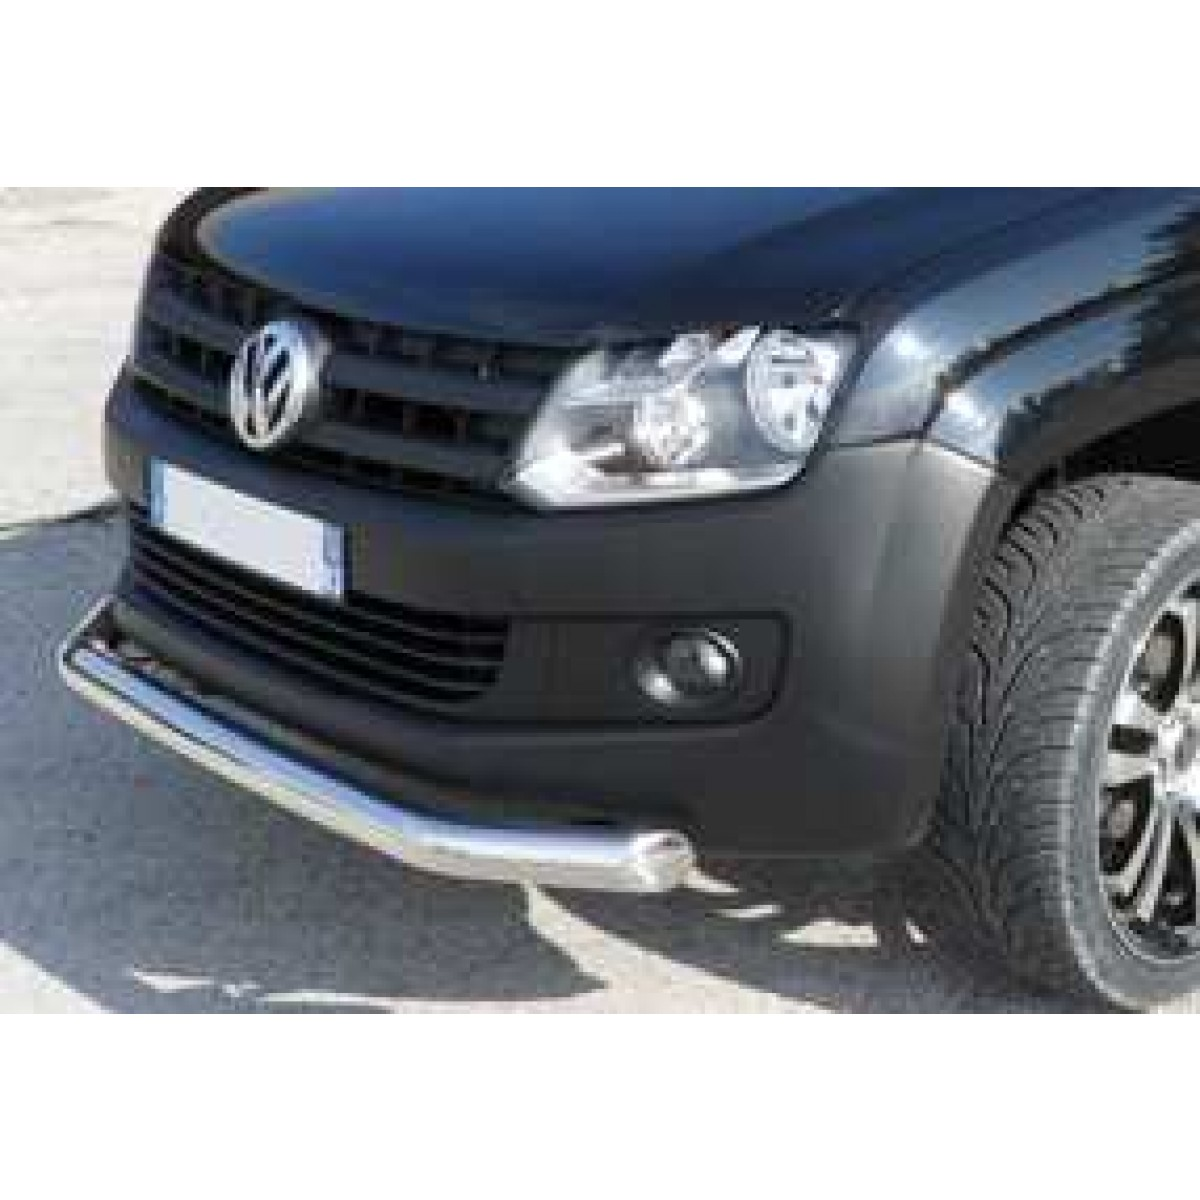 accessoire pickup tube de protection inox avant vw amarok. Black Bedroom Furniture Sets. Home Design Ideas